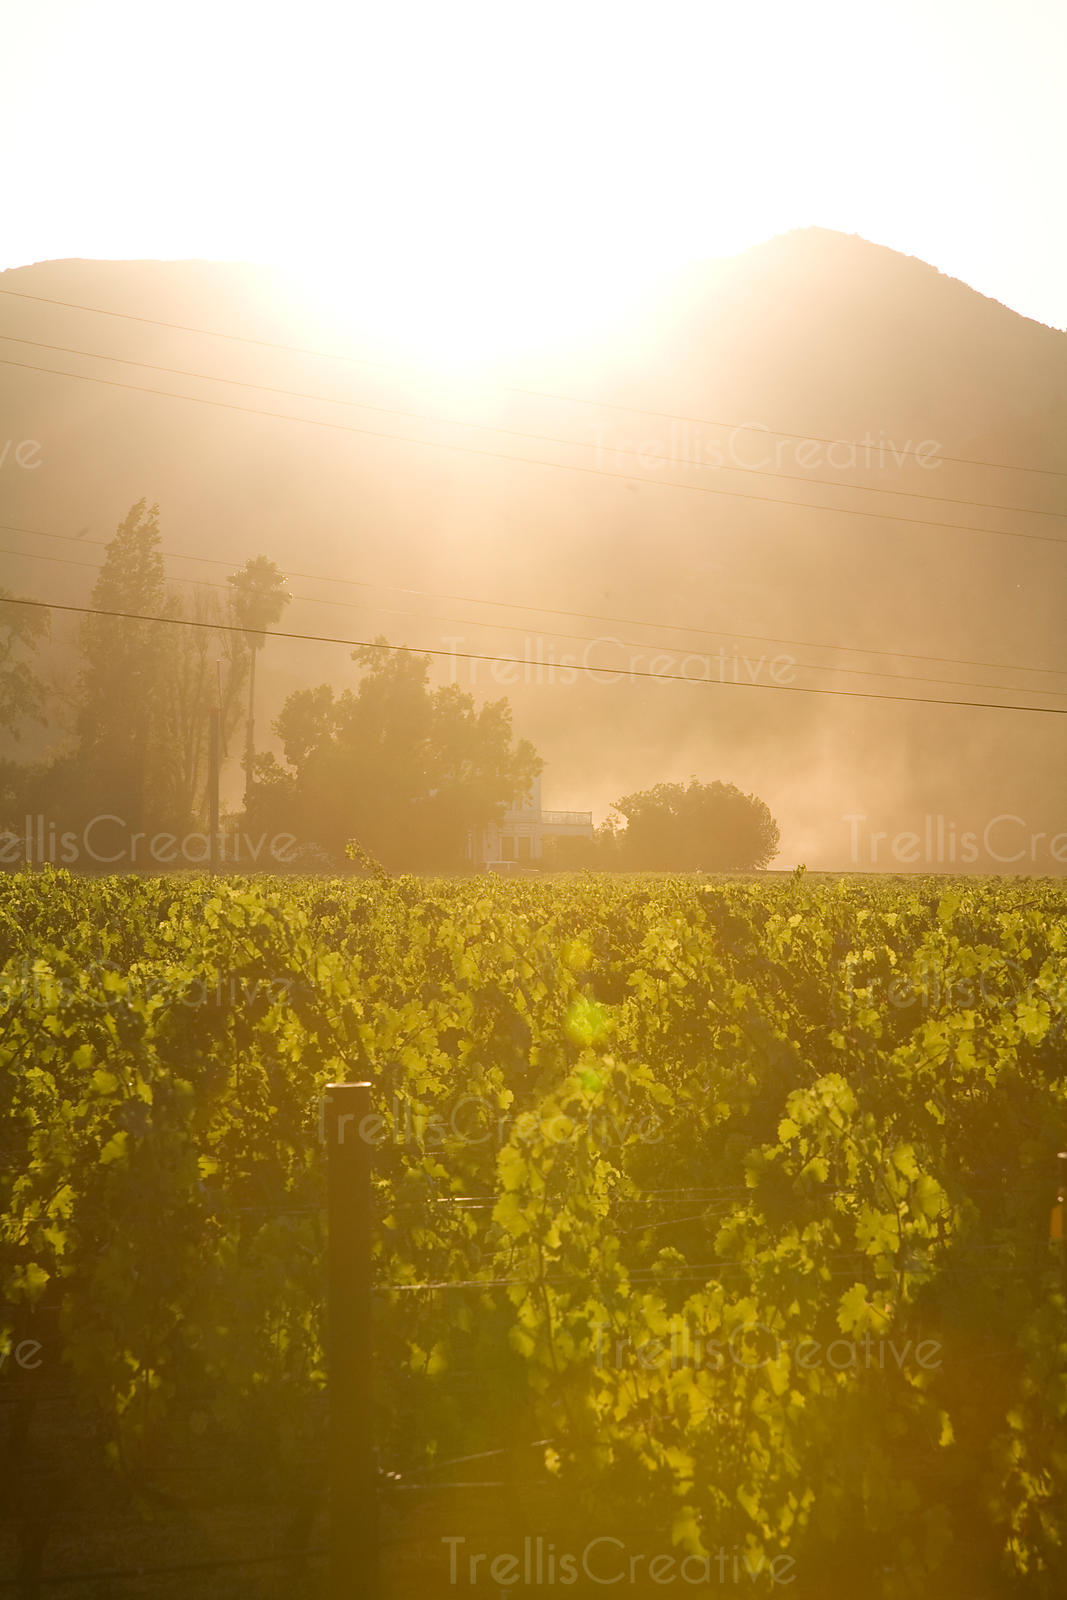 Looking across the valley floor as the sun sets behind Mount Veeder in Napa Valley, California